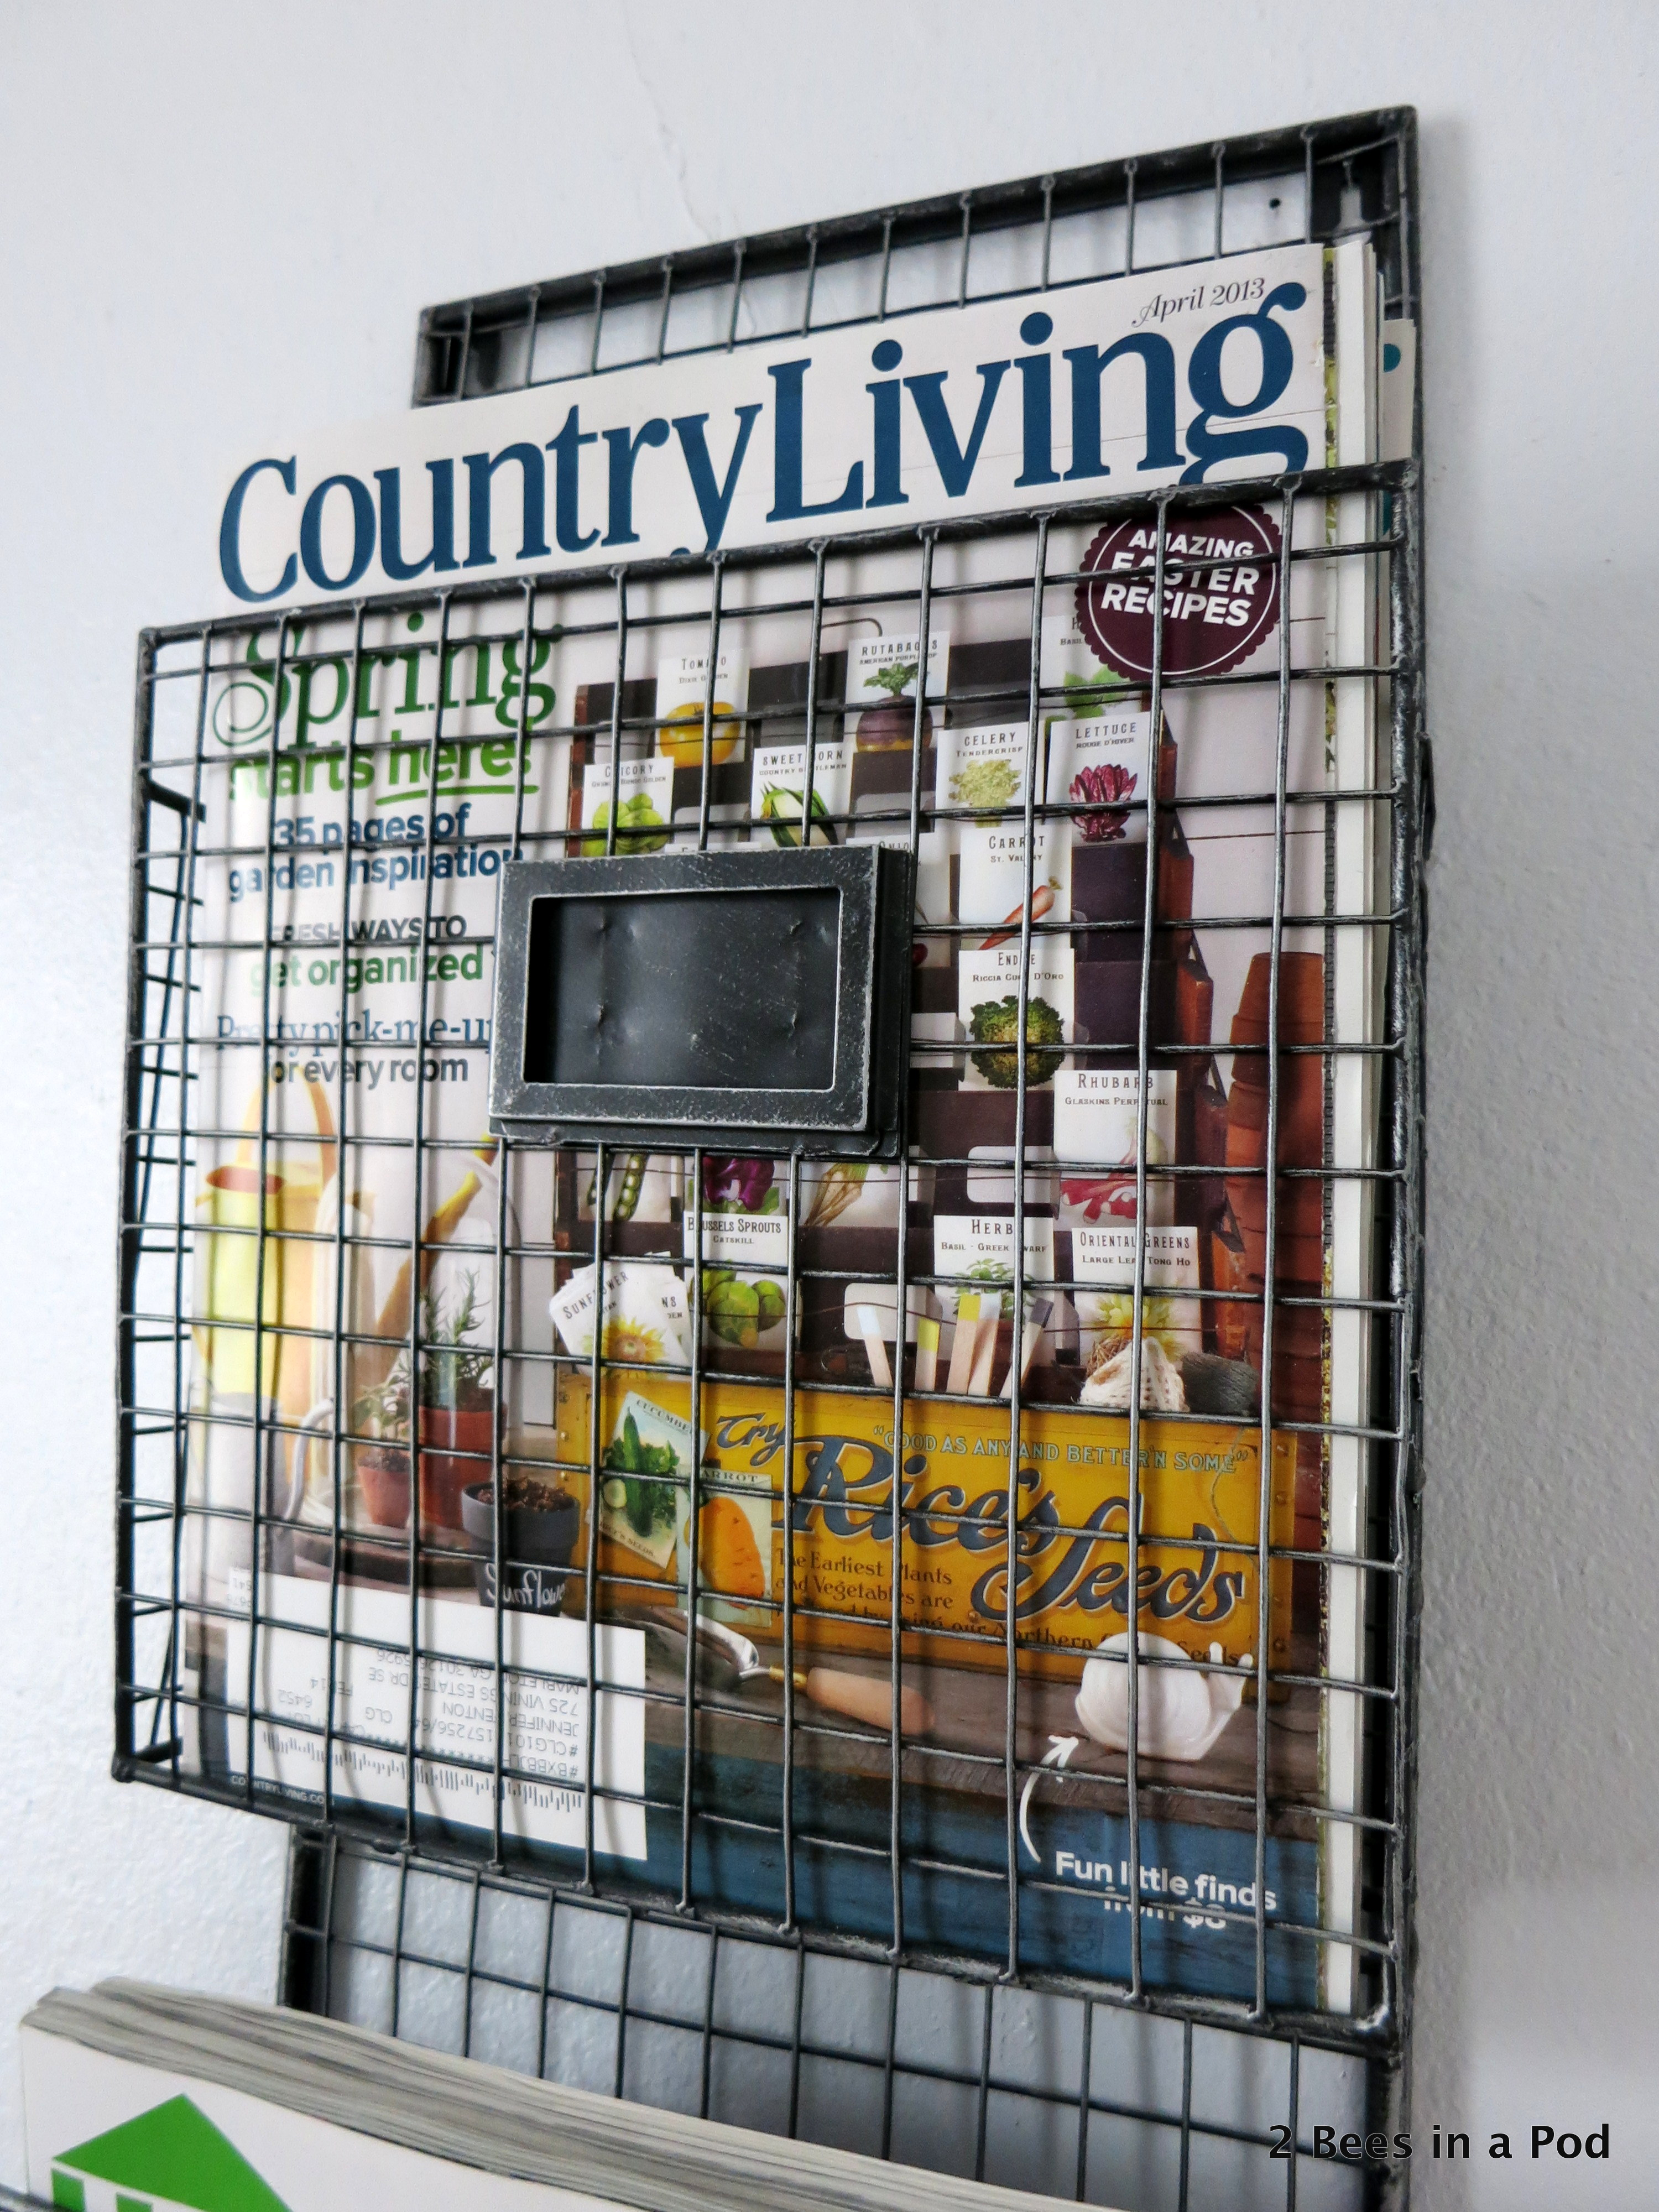 Magazine Rack in Home Office with Country Living, HGTV, and Souther Living